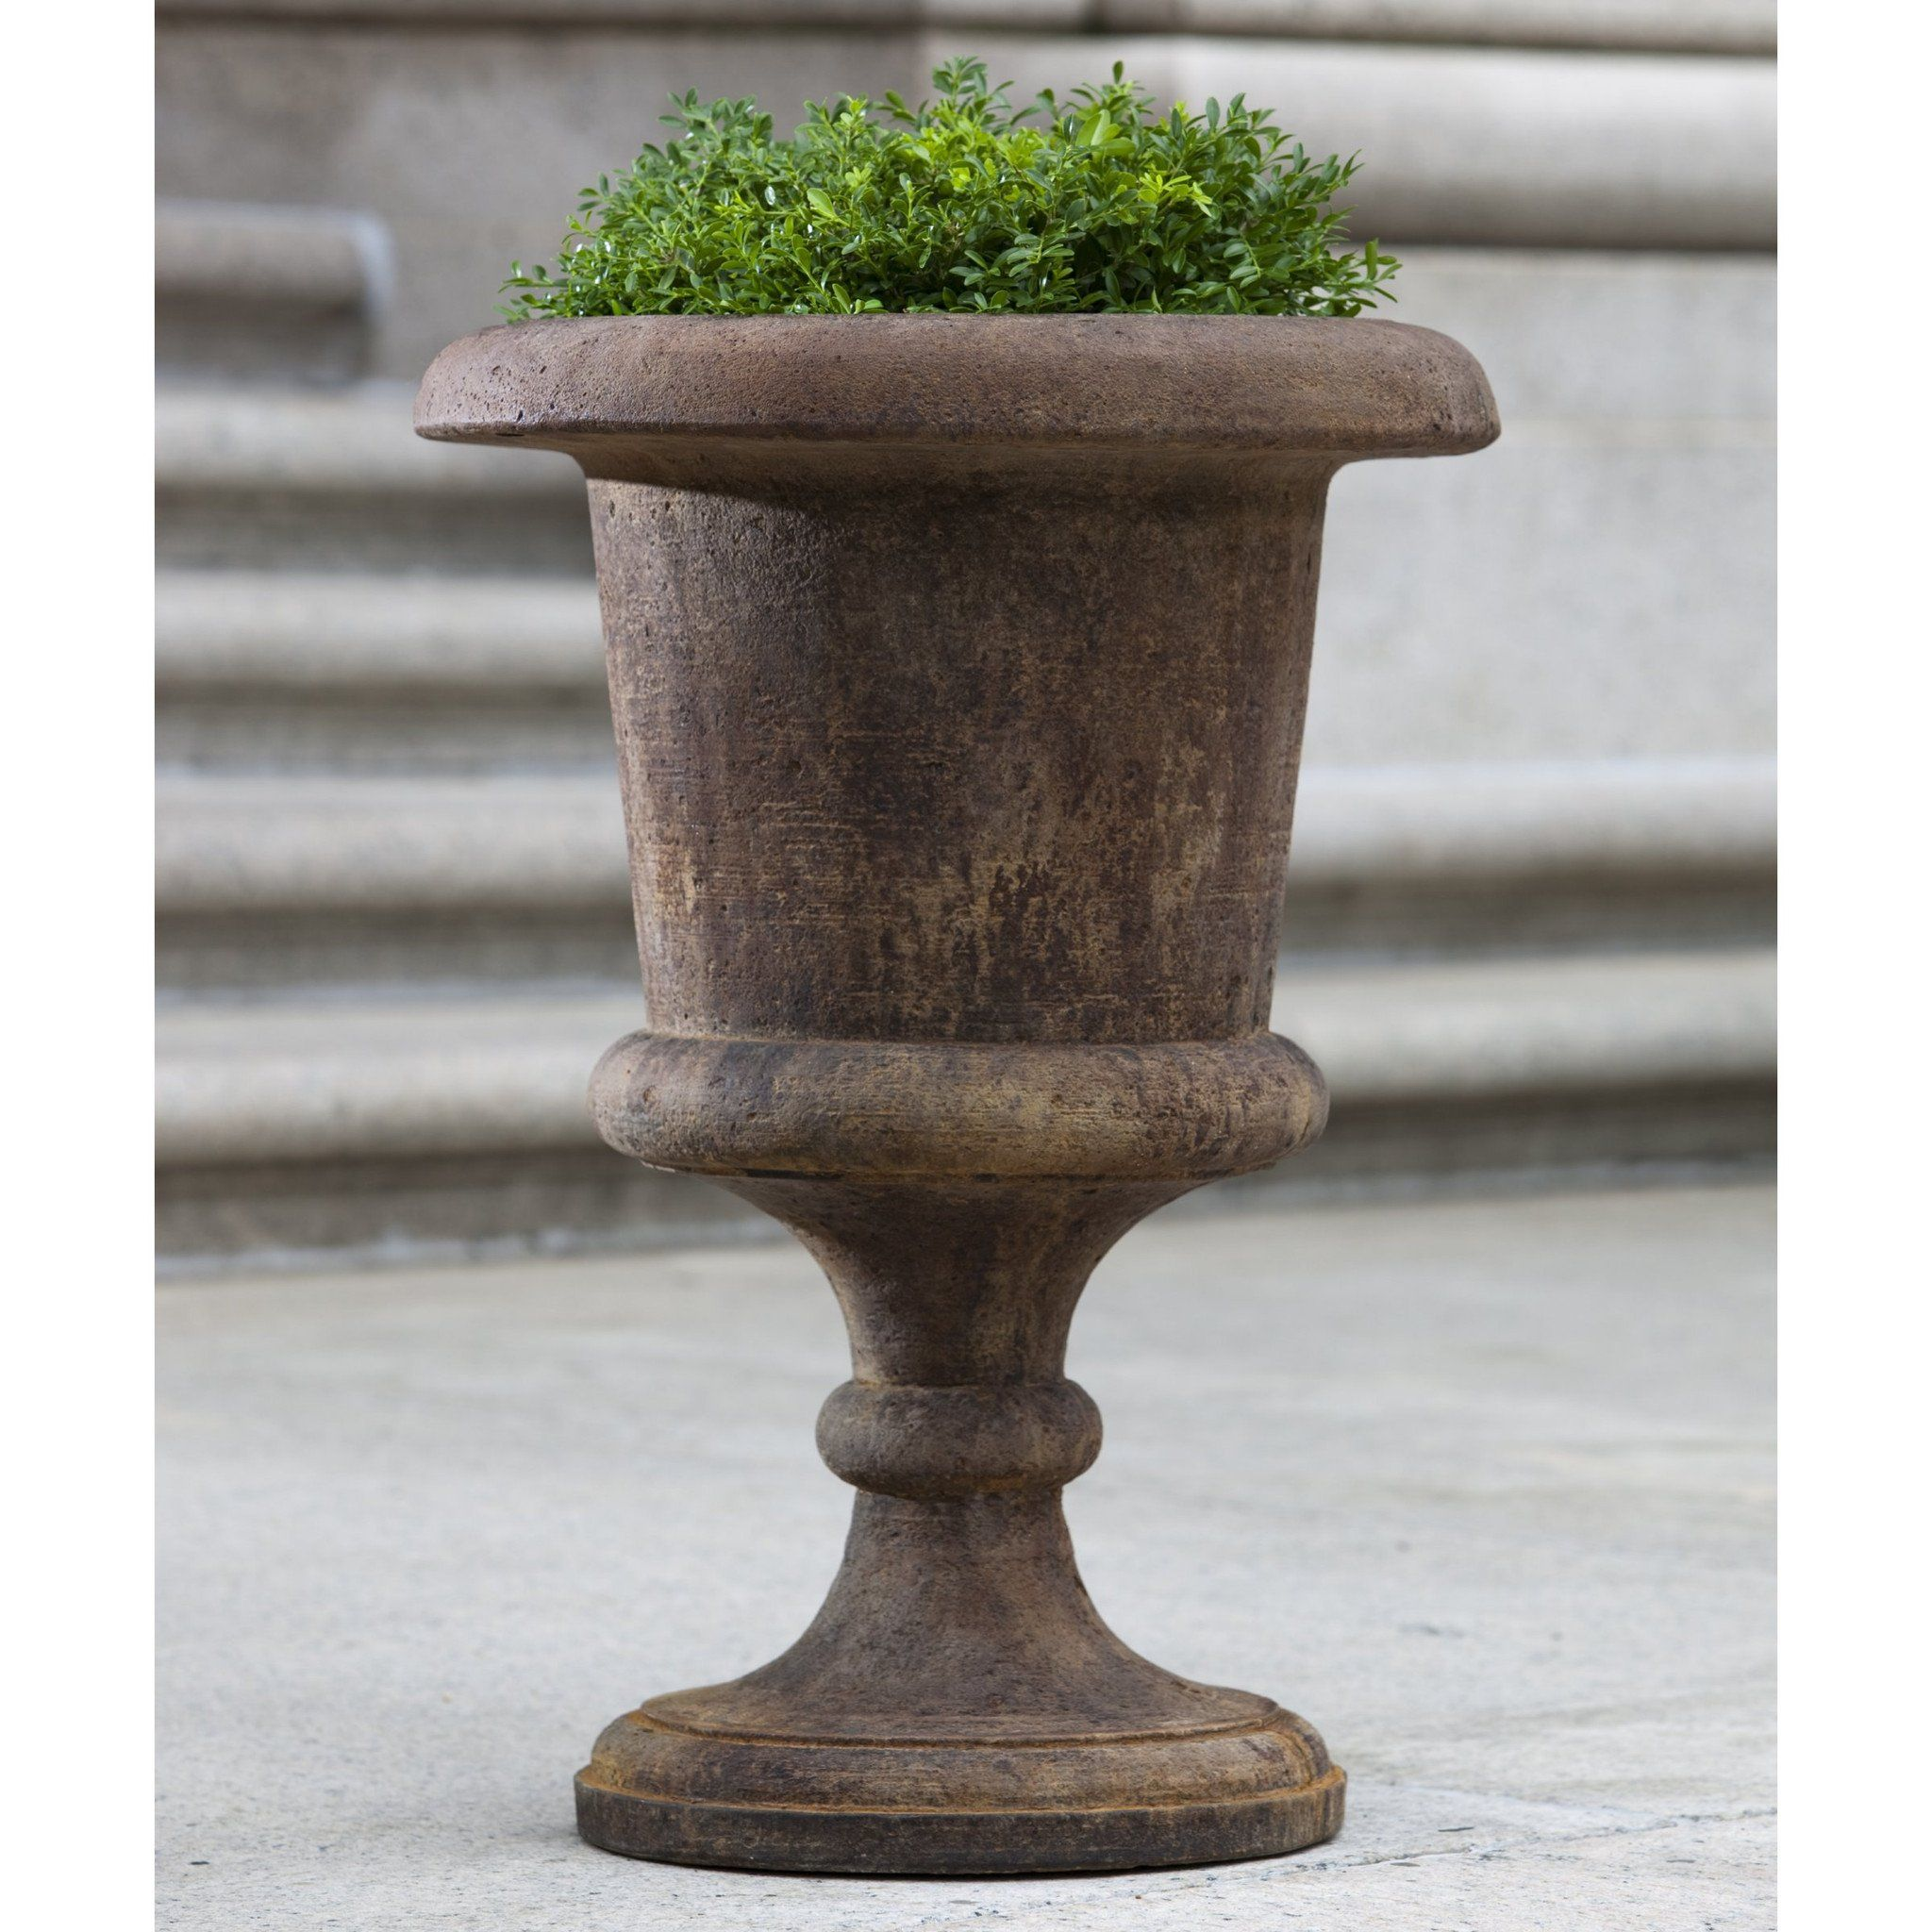 planters urn like resin garden trio planter kylemore self outdoor watering and plastic kylmore urns stone of a in buy